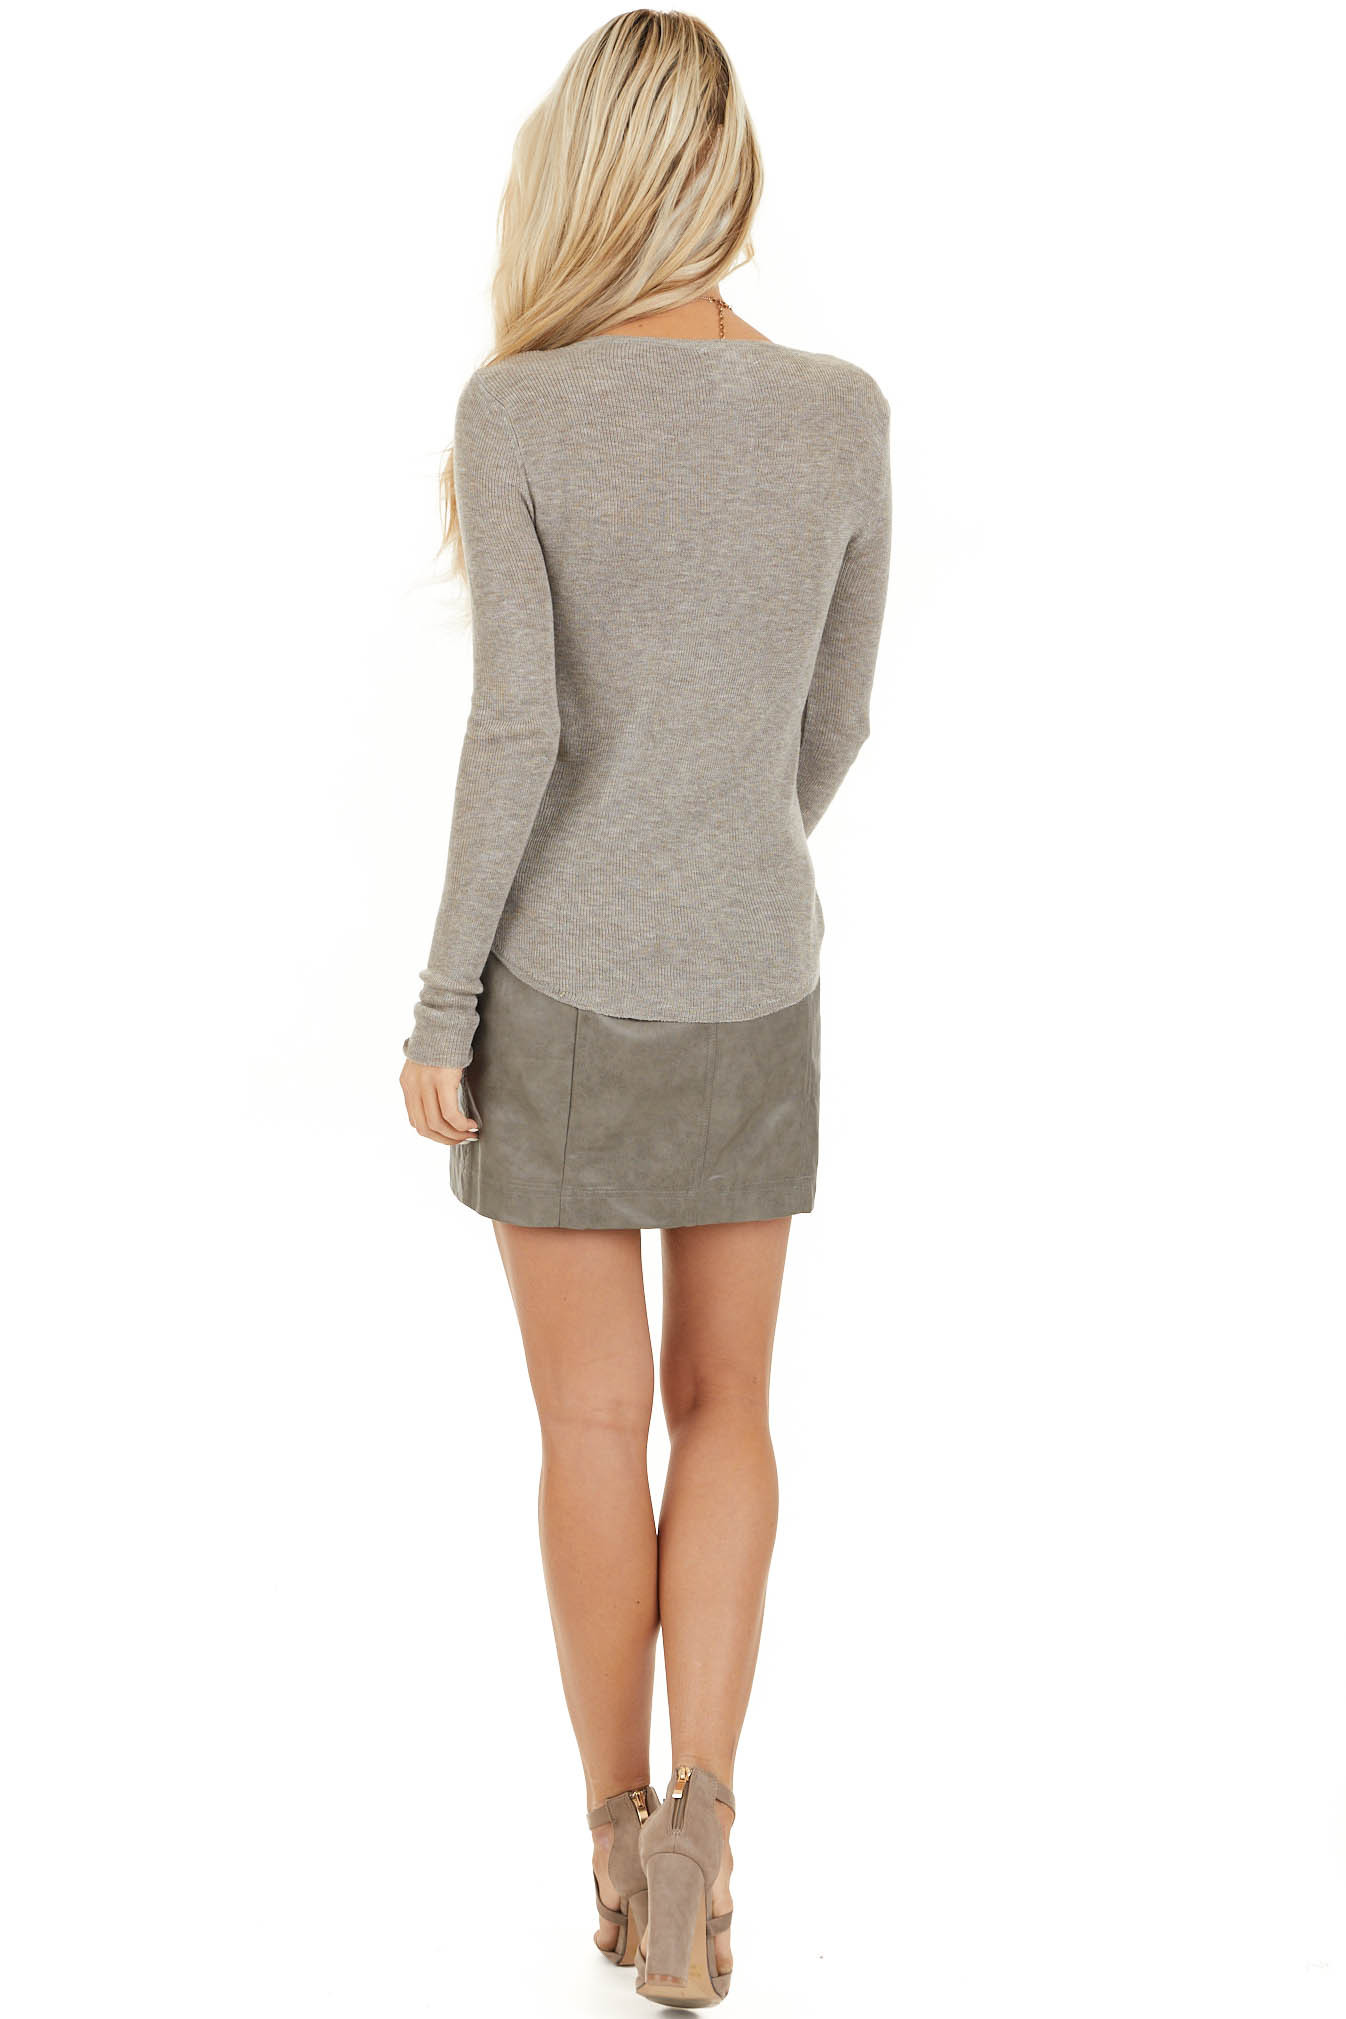 Taupe Faux Leather Fitted Mini Skirt with Zip Up Closure back full body